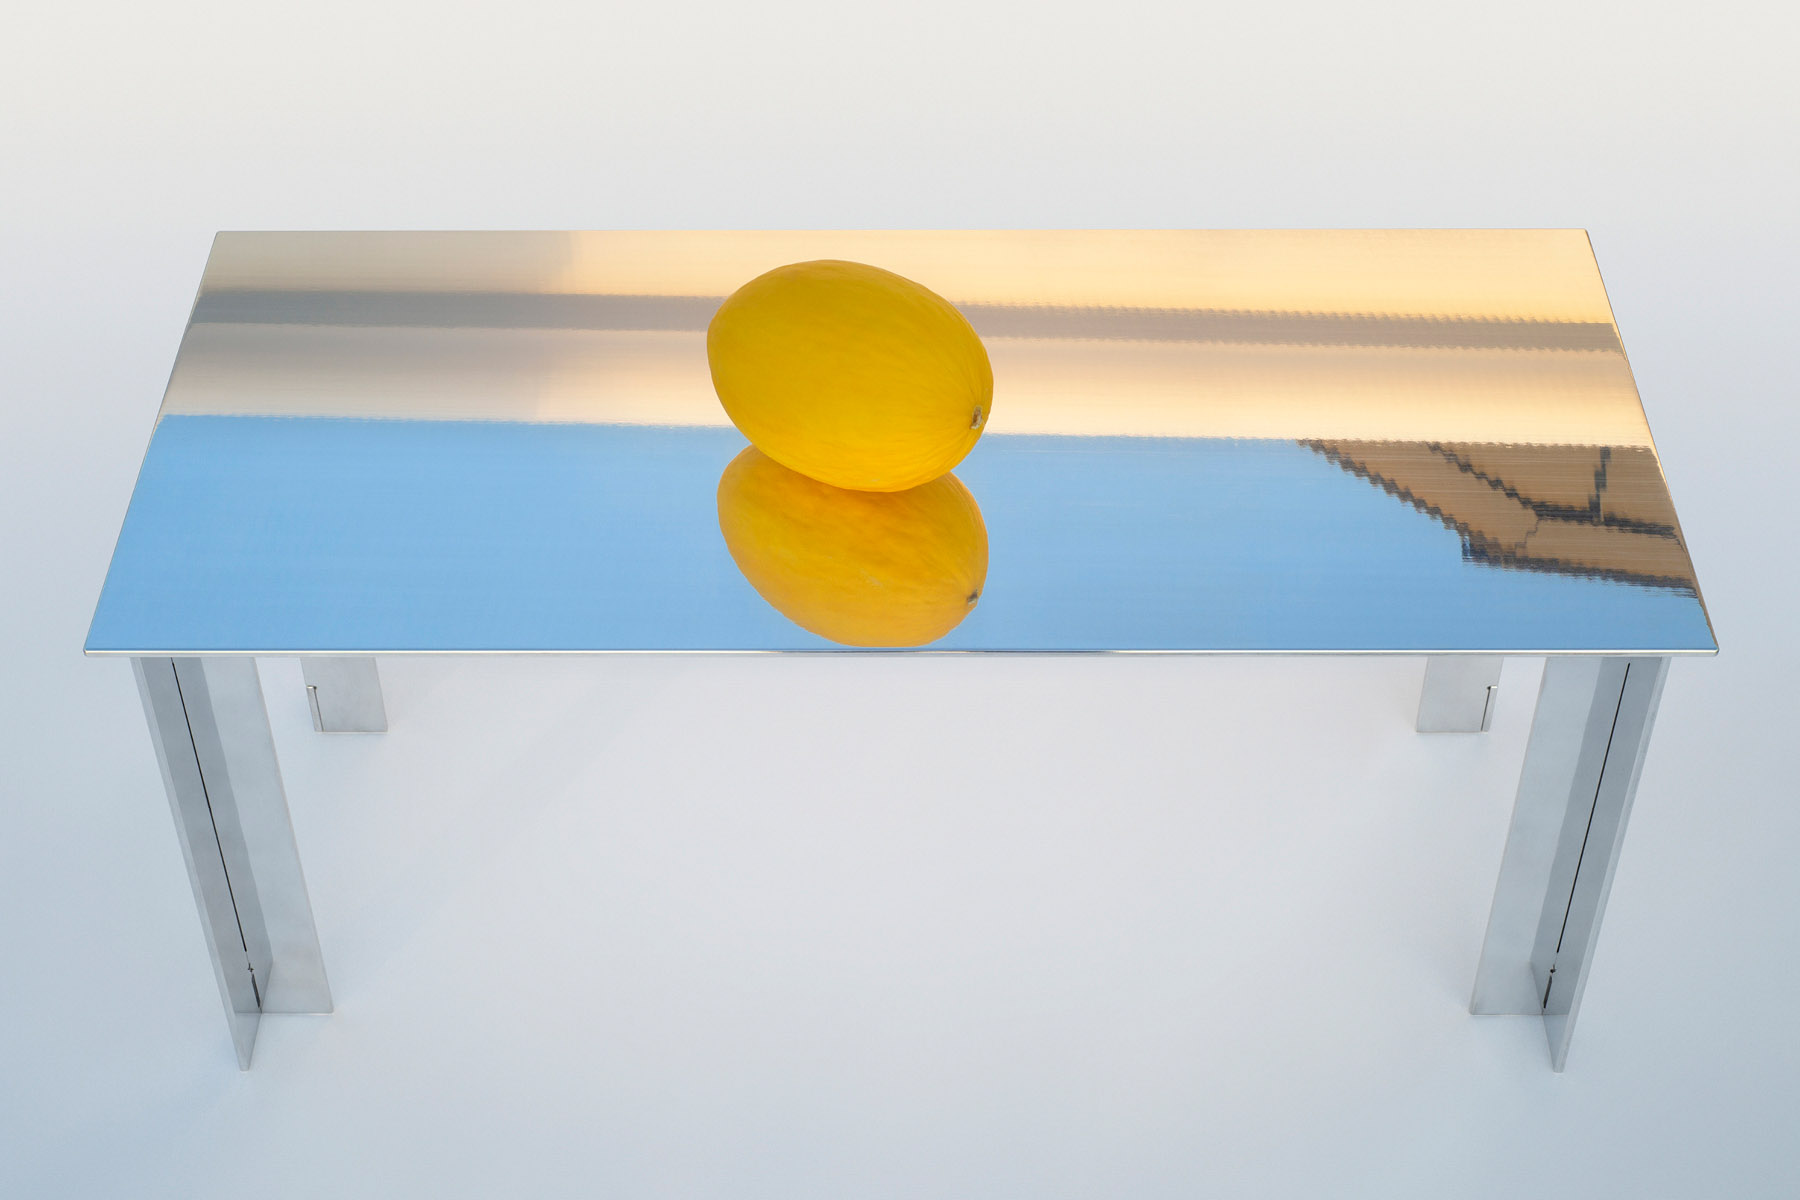 Table basse en aluminium avec un melon